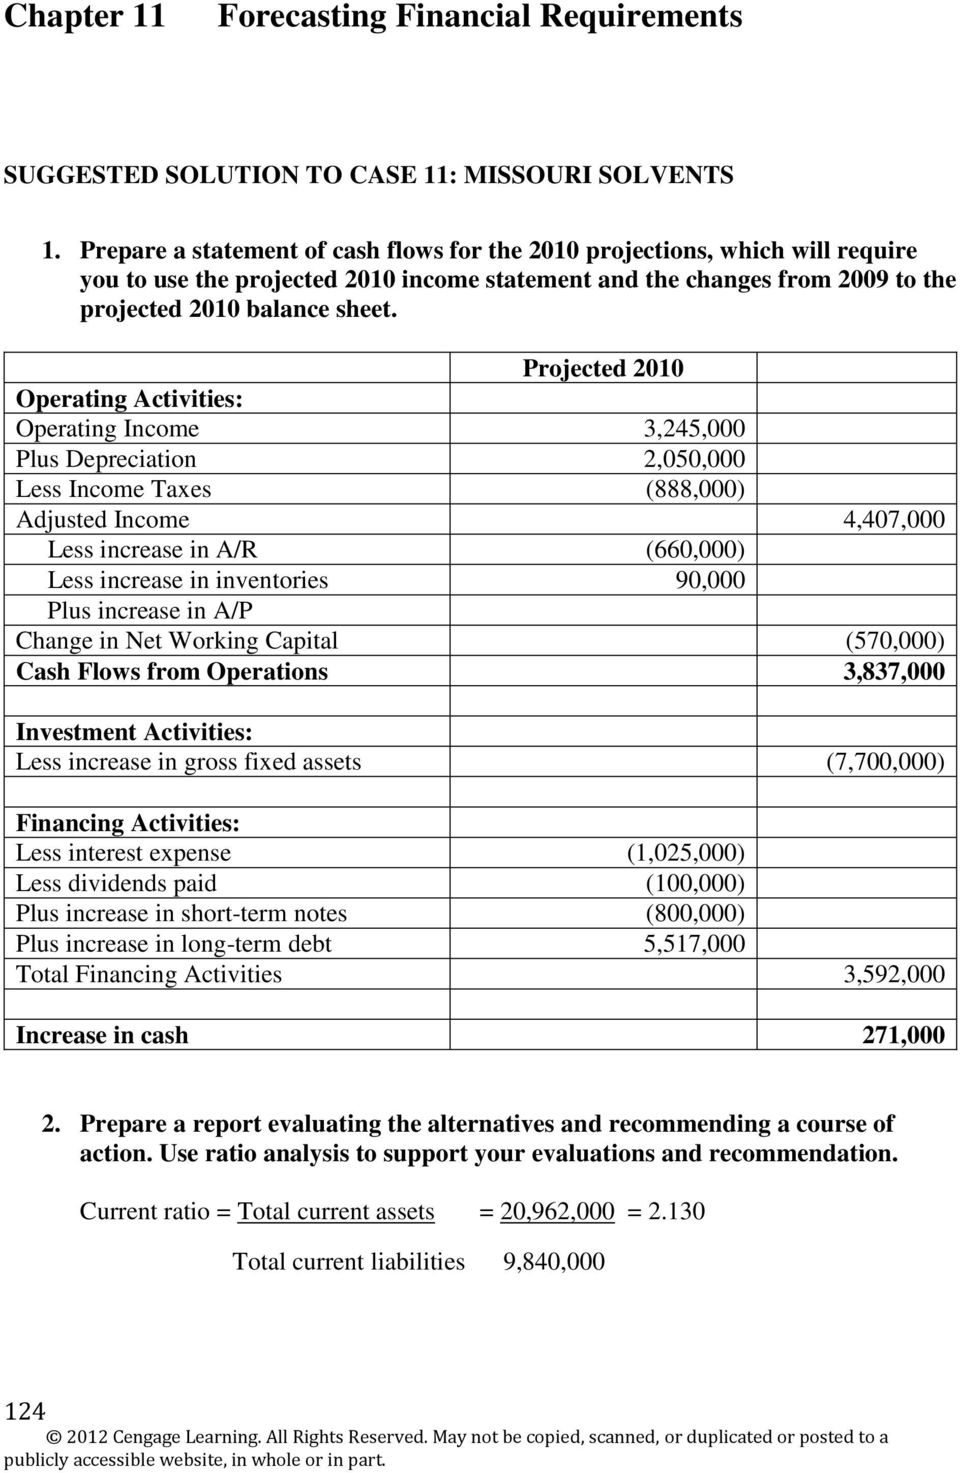 Projected 2010 Operating Activities: Operating Income 3,245,000 Plus Depreciation 2,050,000 Less Income Taxes (888,000) Adjusted Income 4,407,000 Less increase in A/R (660,000) Less increase in